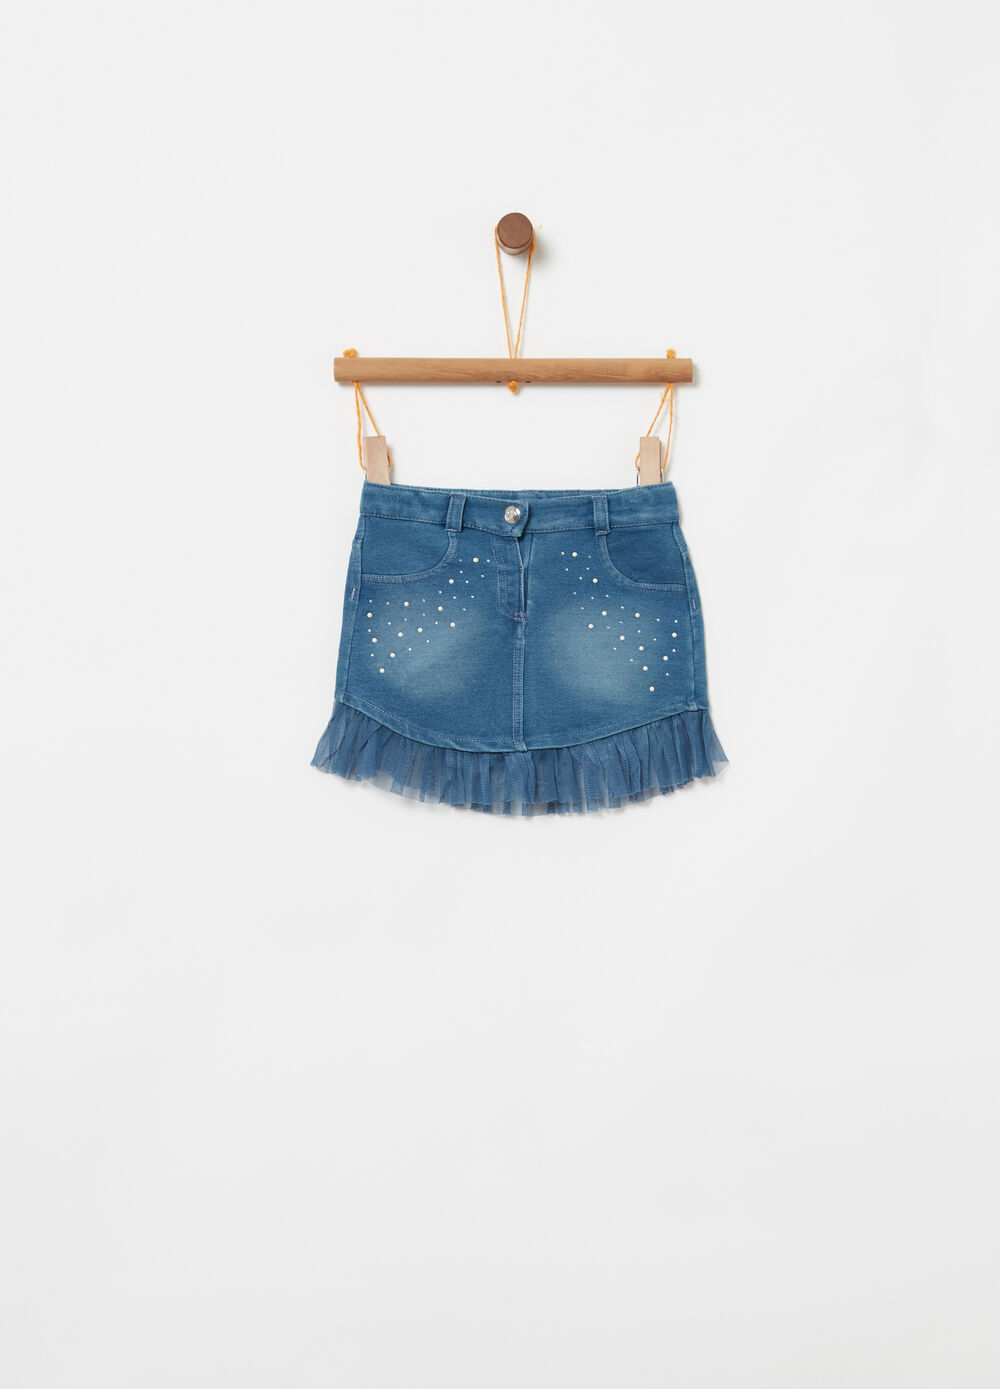 Denim skirt with diamanté, pearl and tulle details